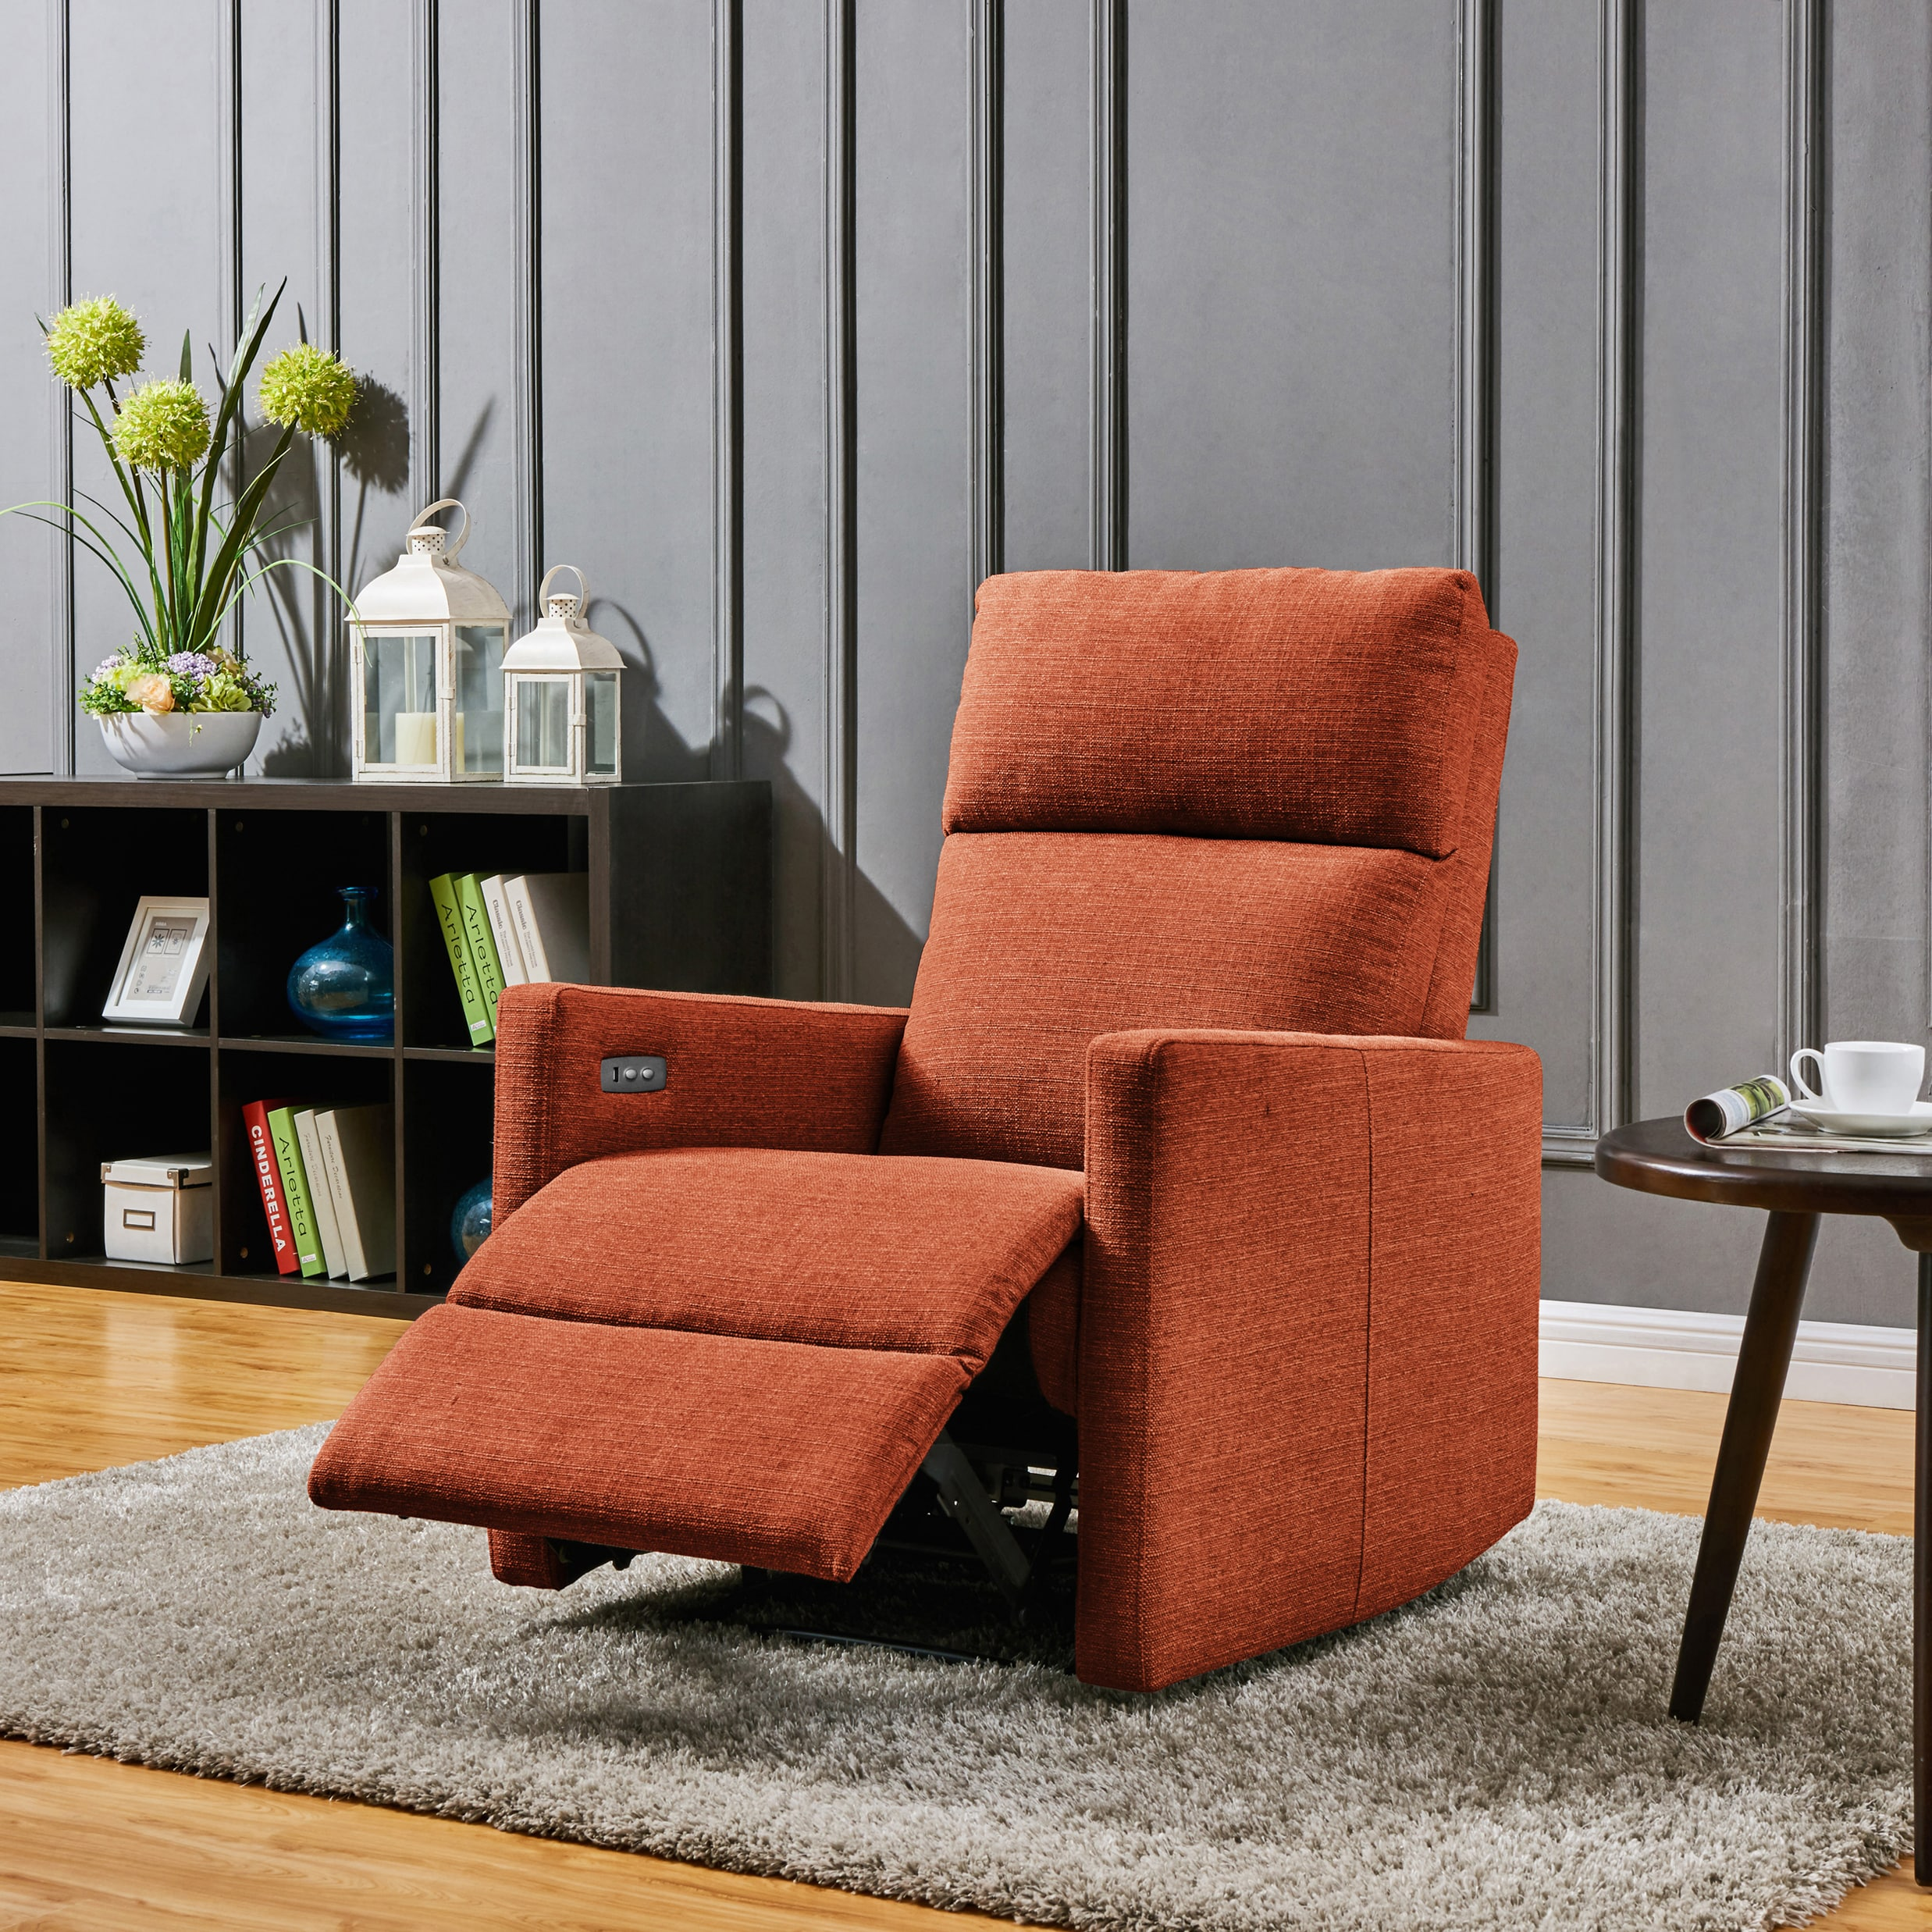 Superbe ProLounger Orange Power Wall Hugger Recliner Chair With USB Port